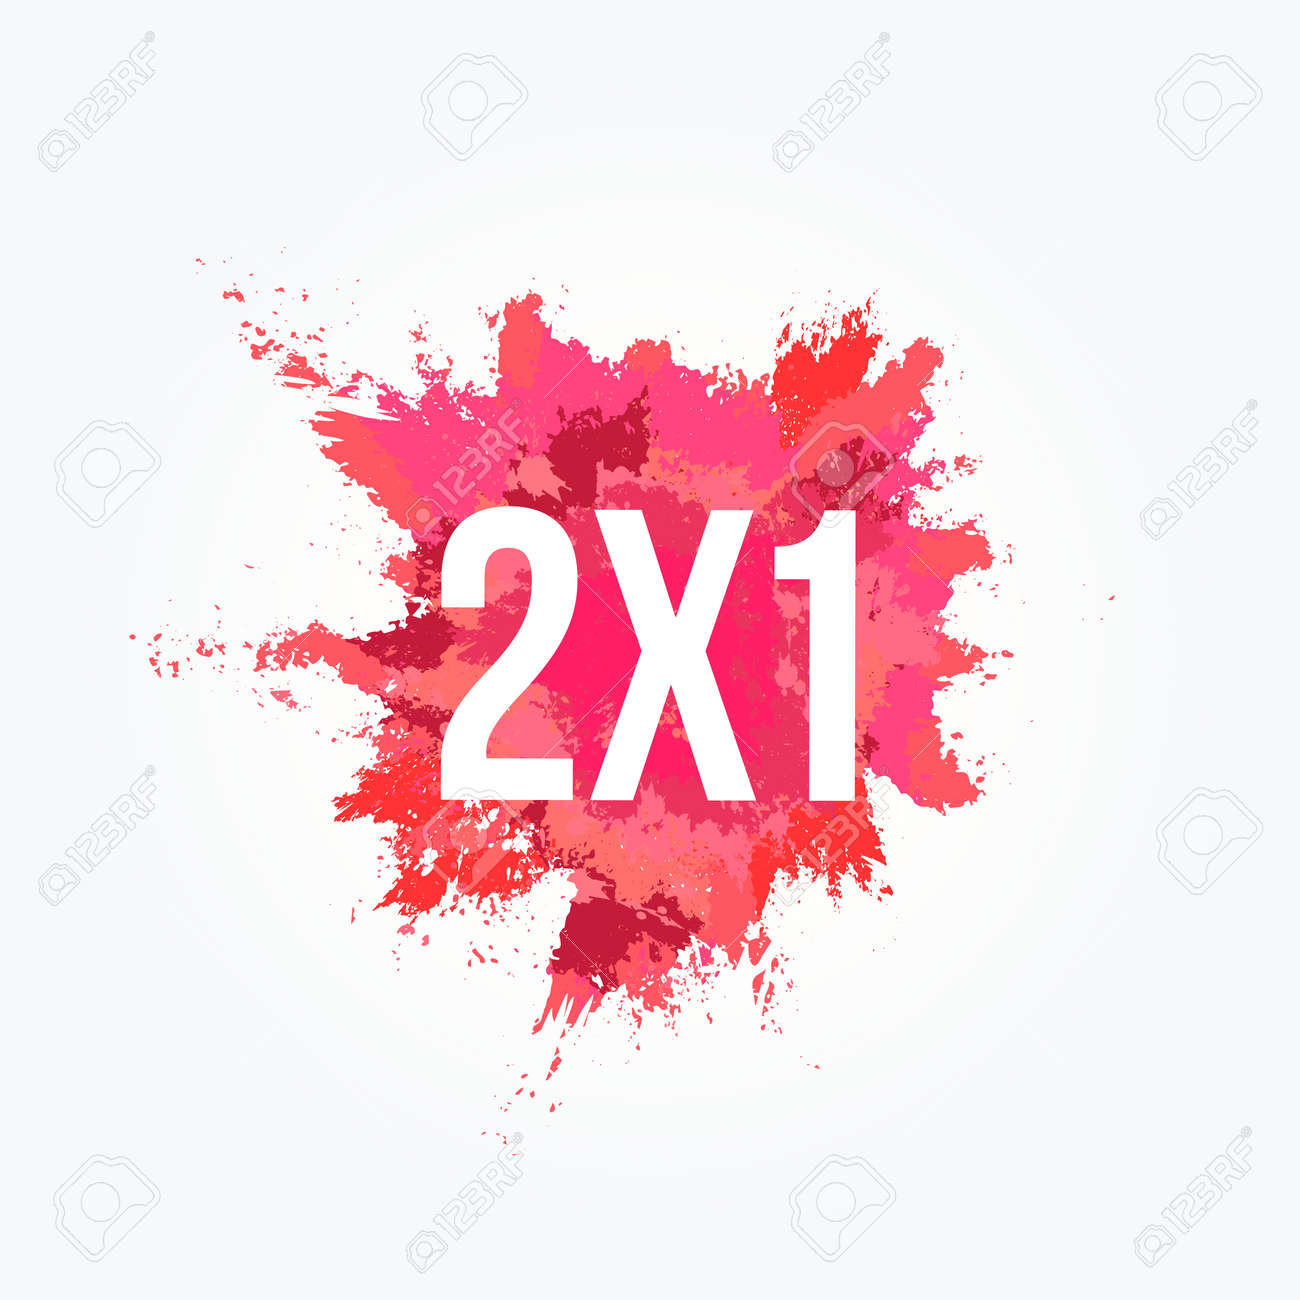 2x1 Powder Stain Commercial - 104573934